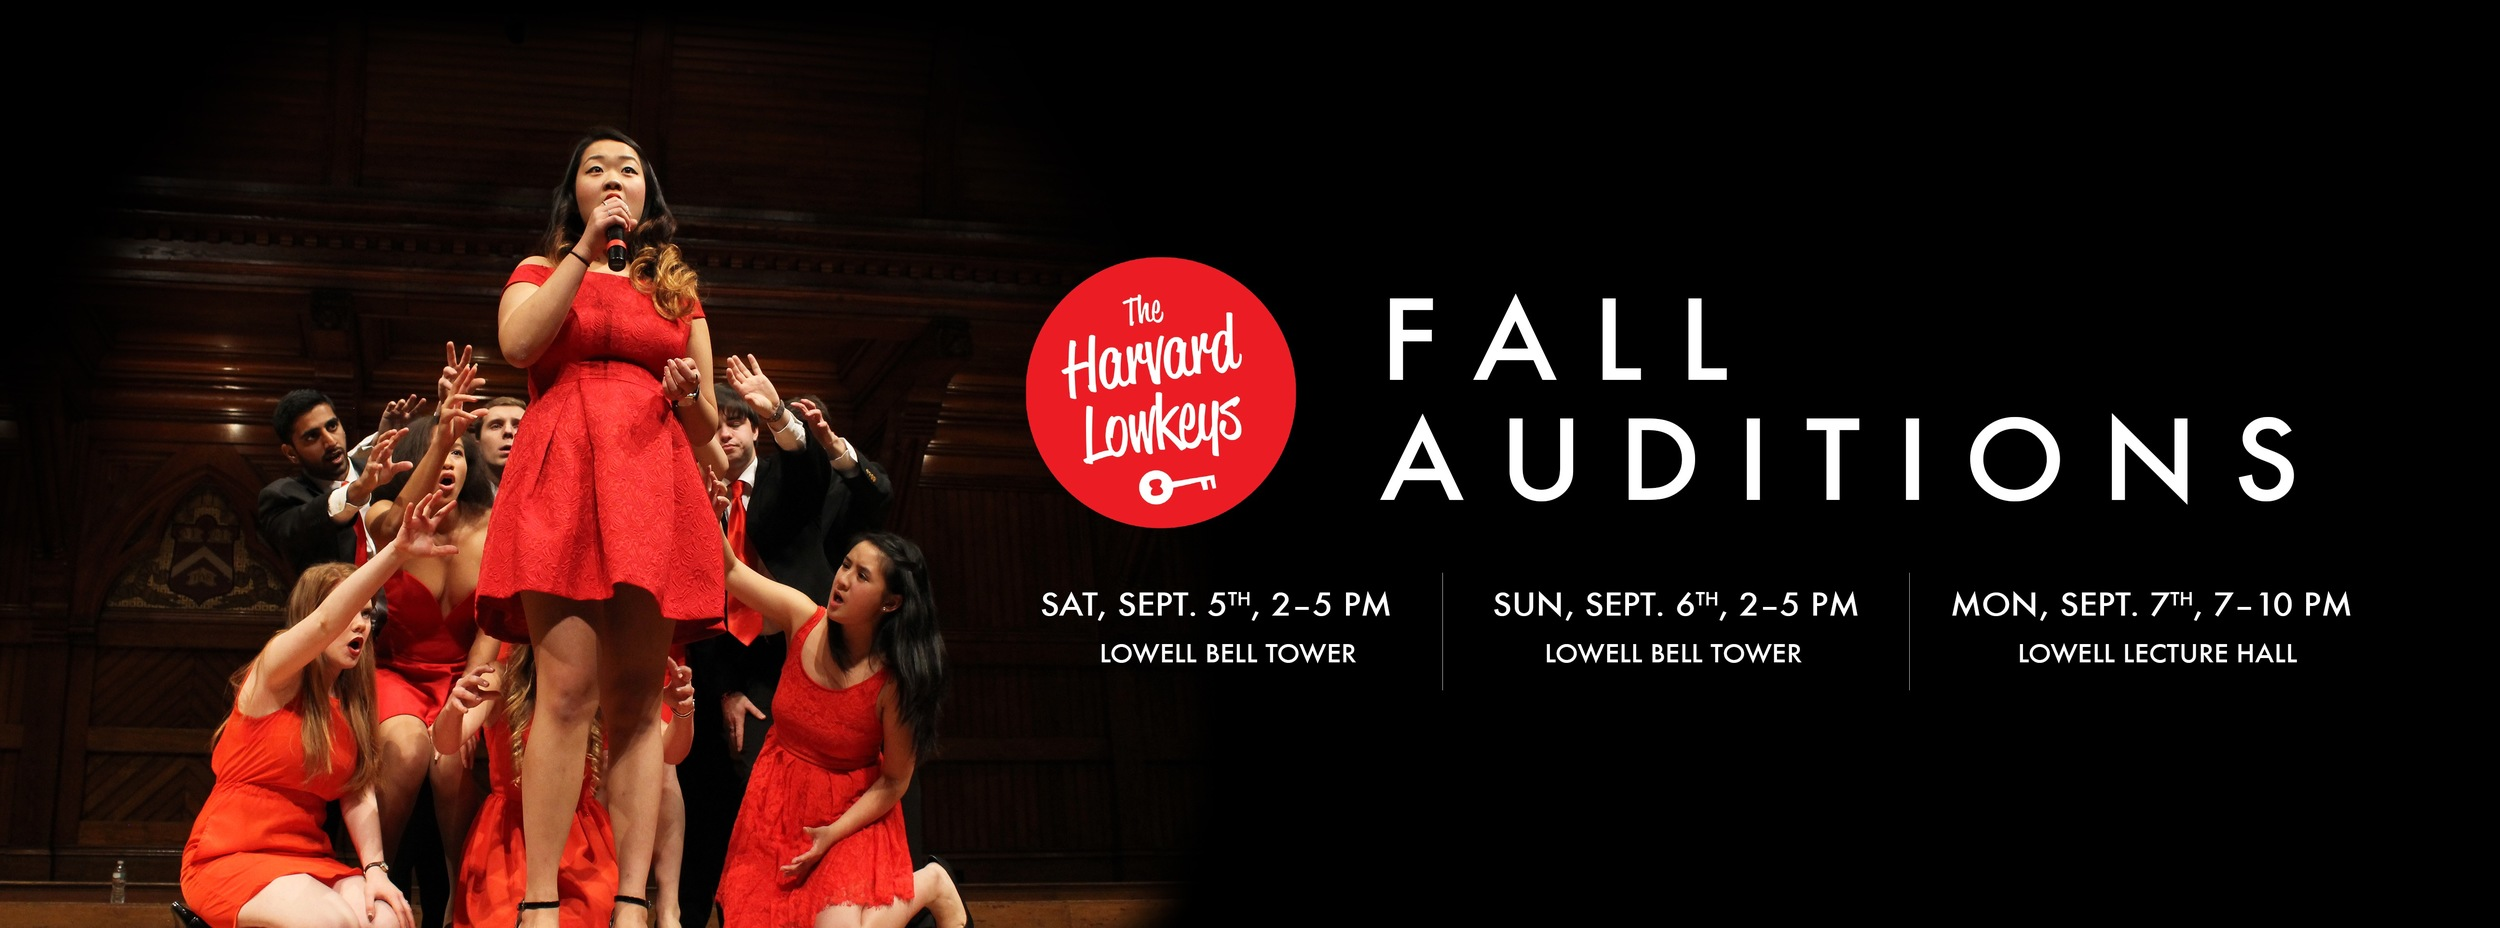 Fall Auditions - Sail.jpg